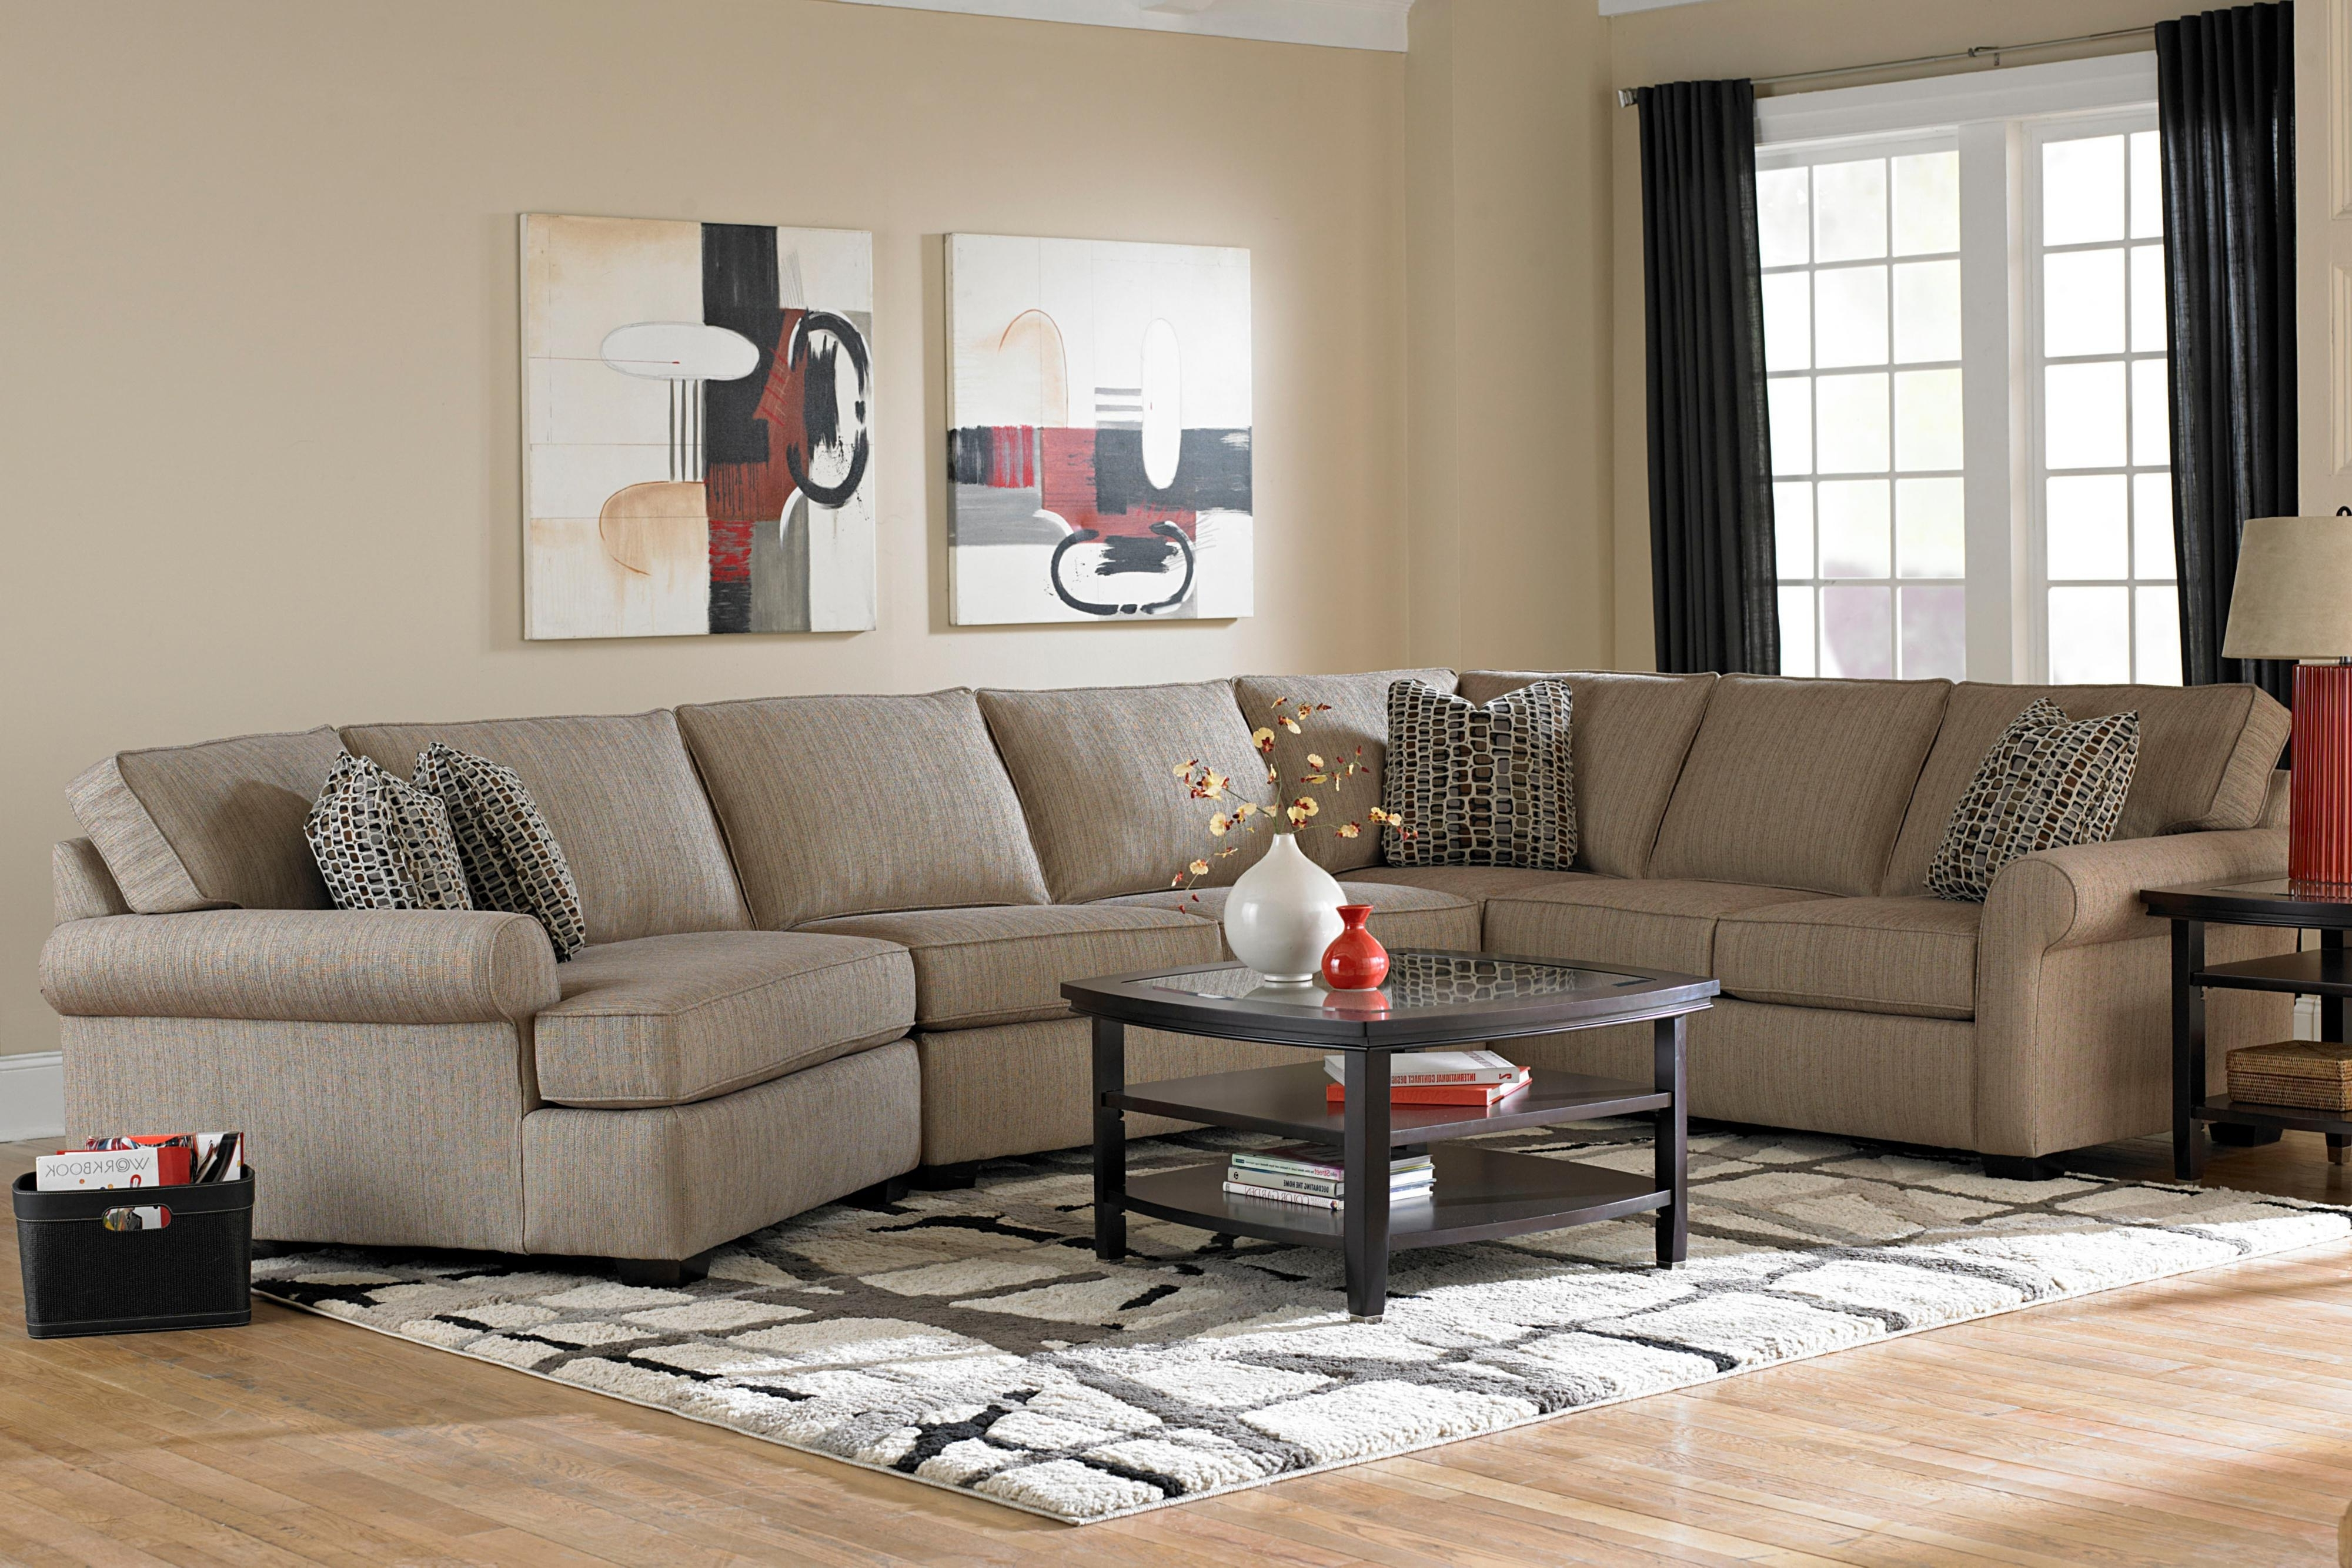 Preferred Pensacola Fl Sectional Sofas For Broyhill Furniture Ethan Transitional Sectional Sofa With Right (View 14 of 20)